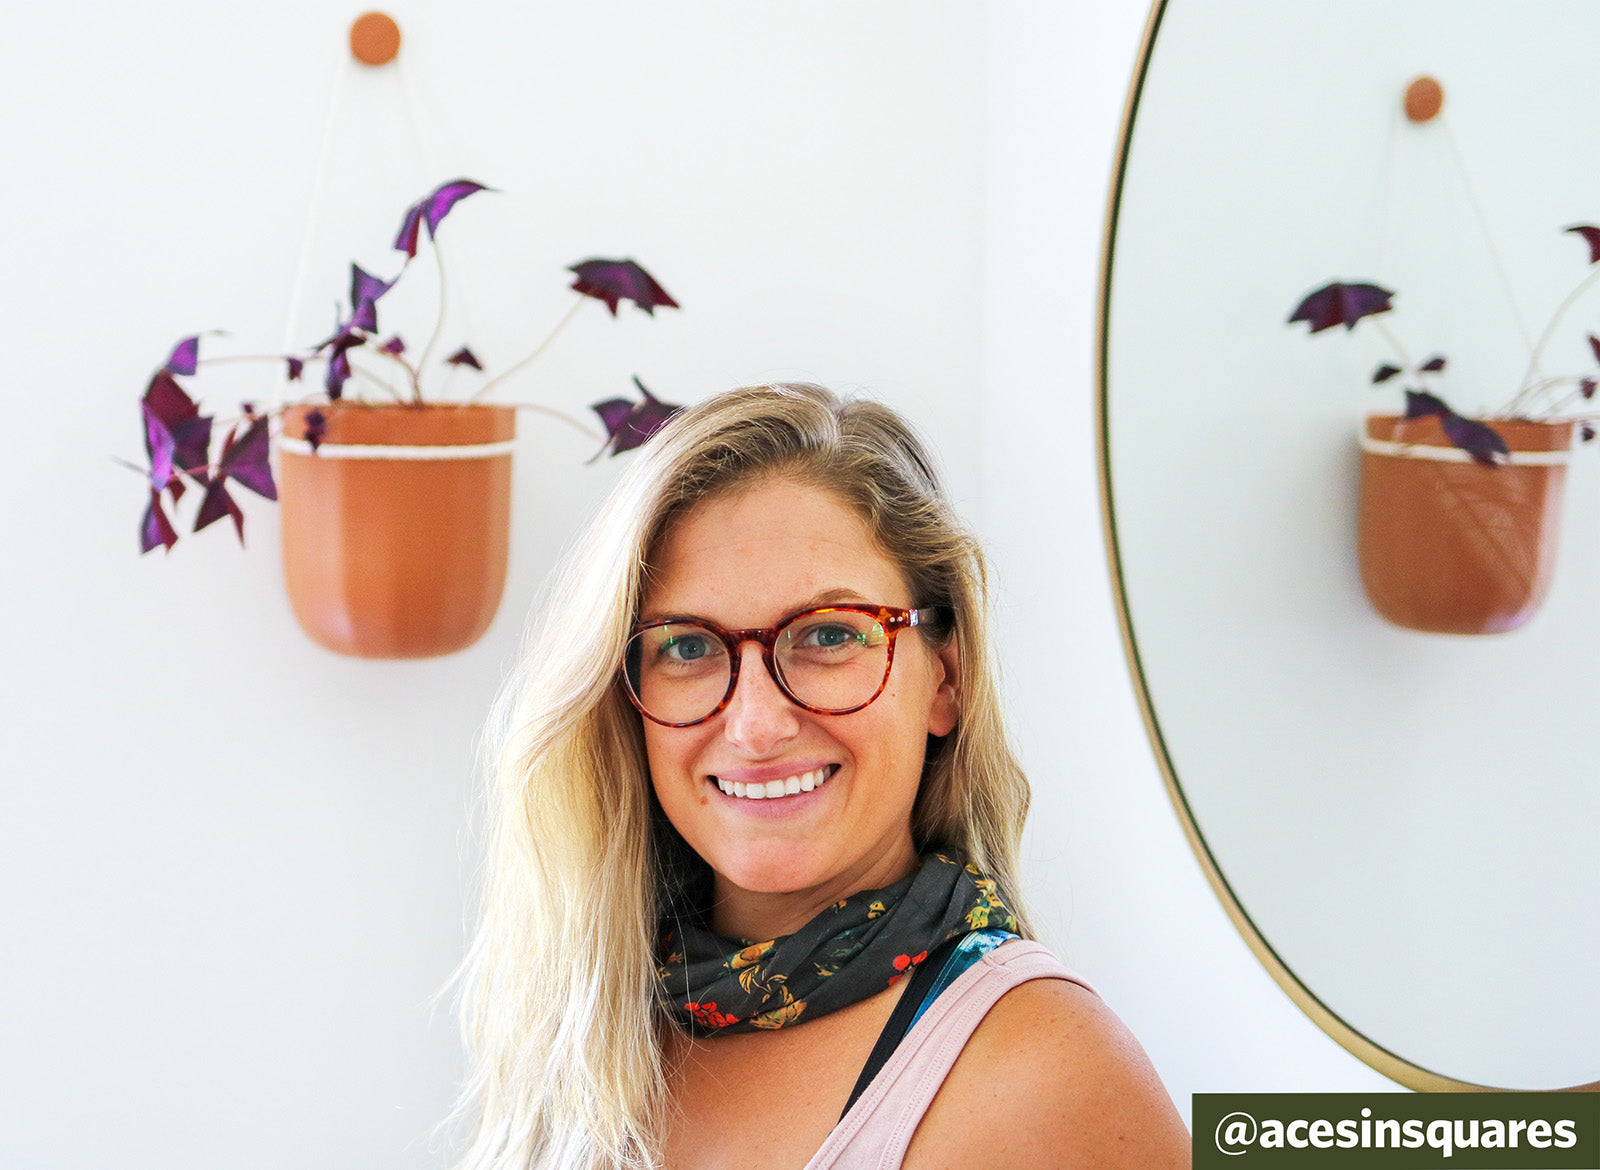 Q&A: Being a Plant Mom with @acesinsquares